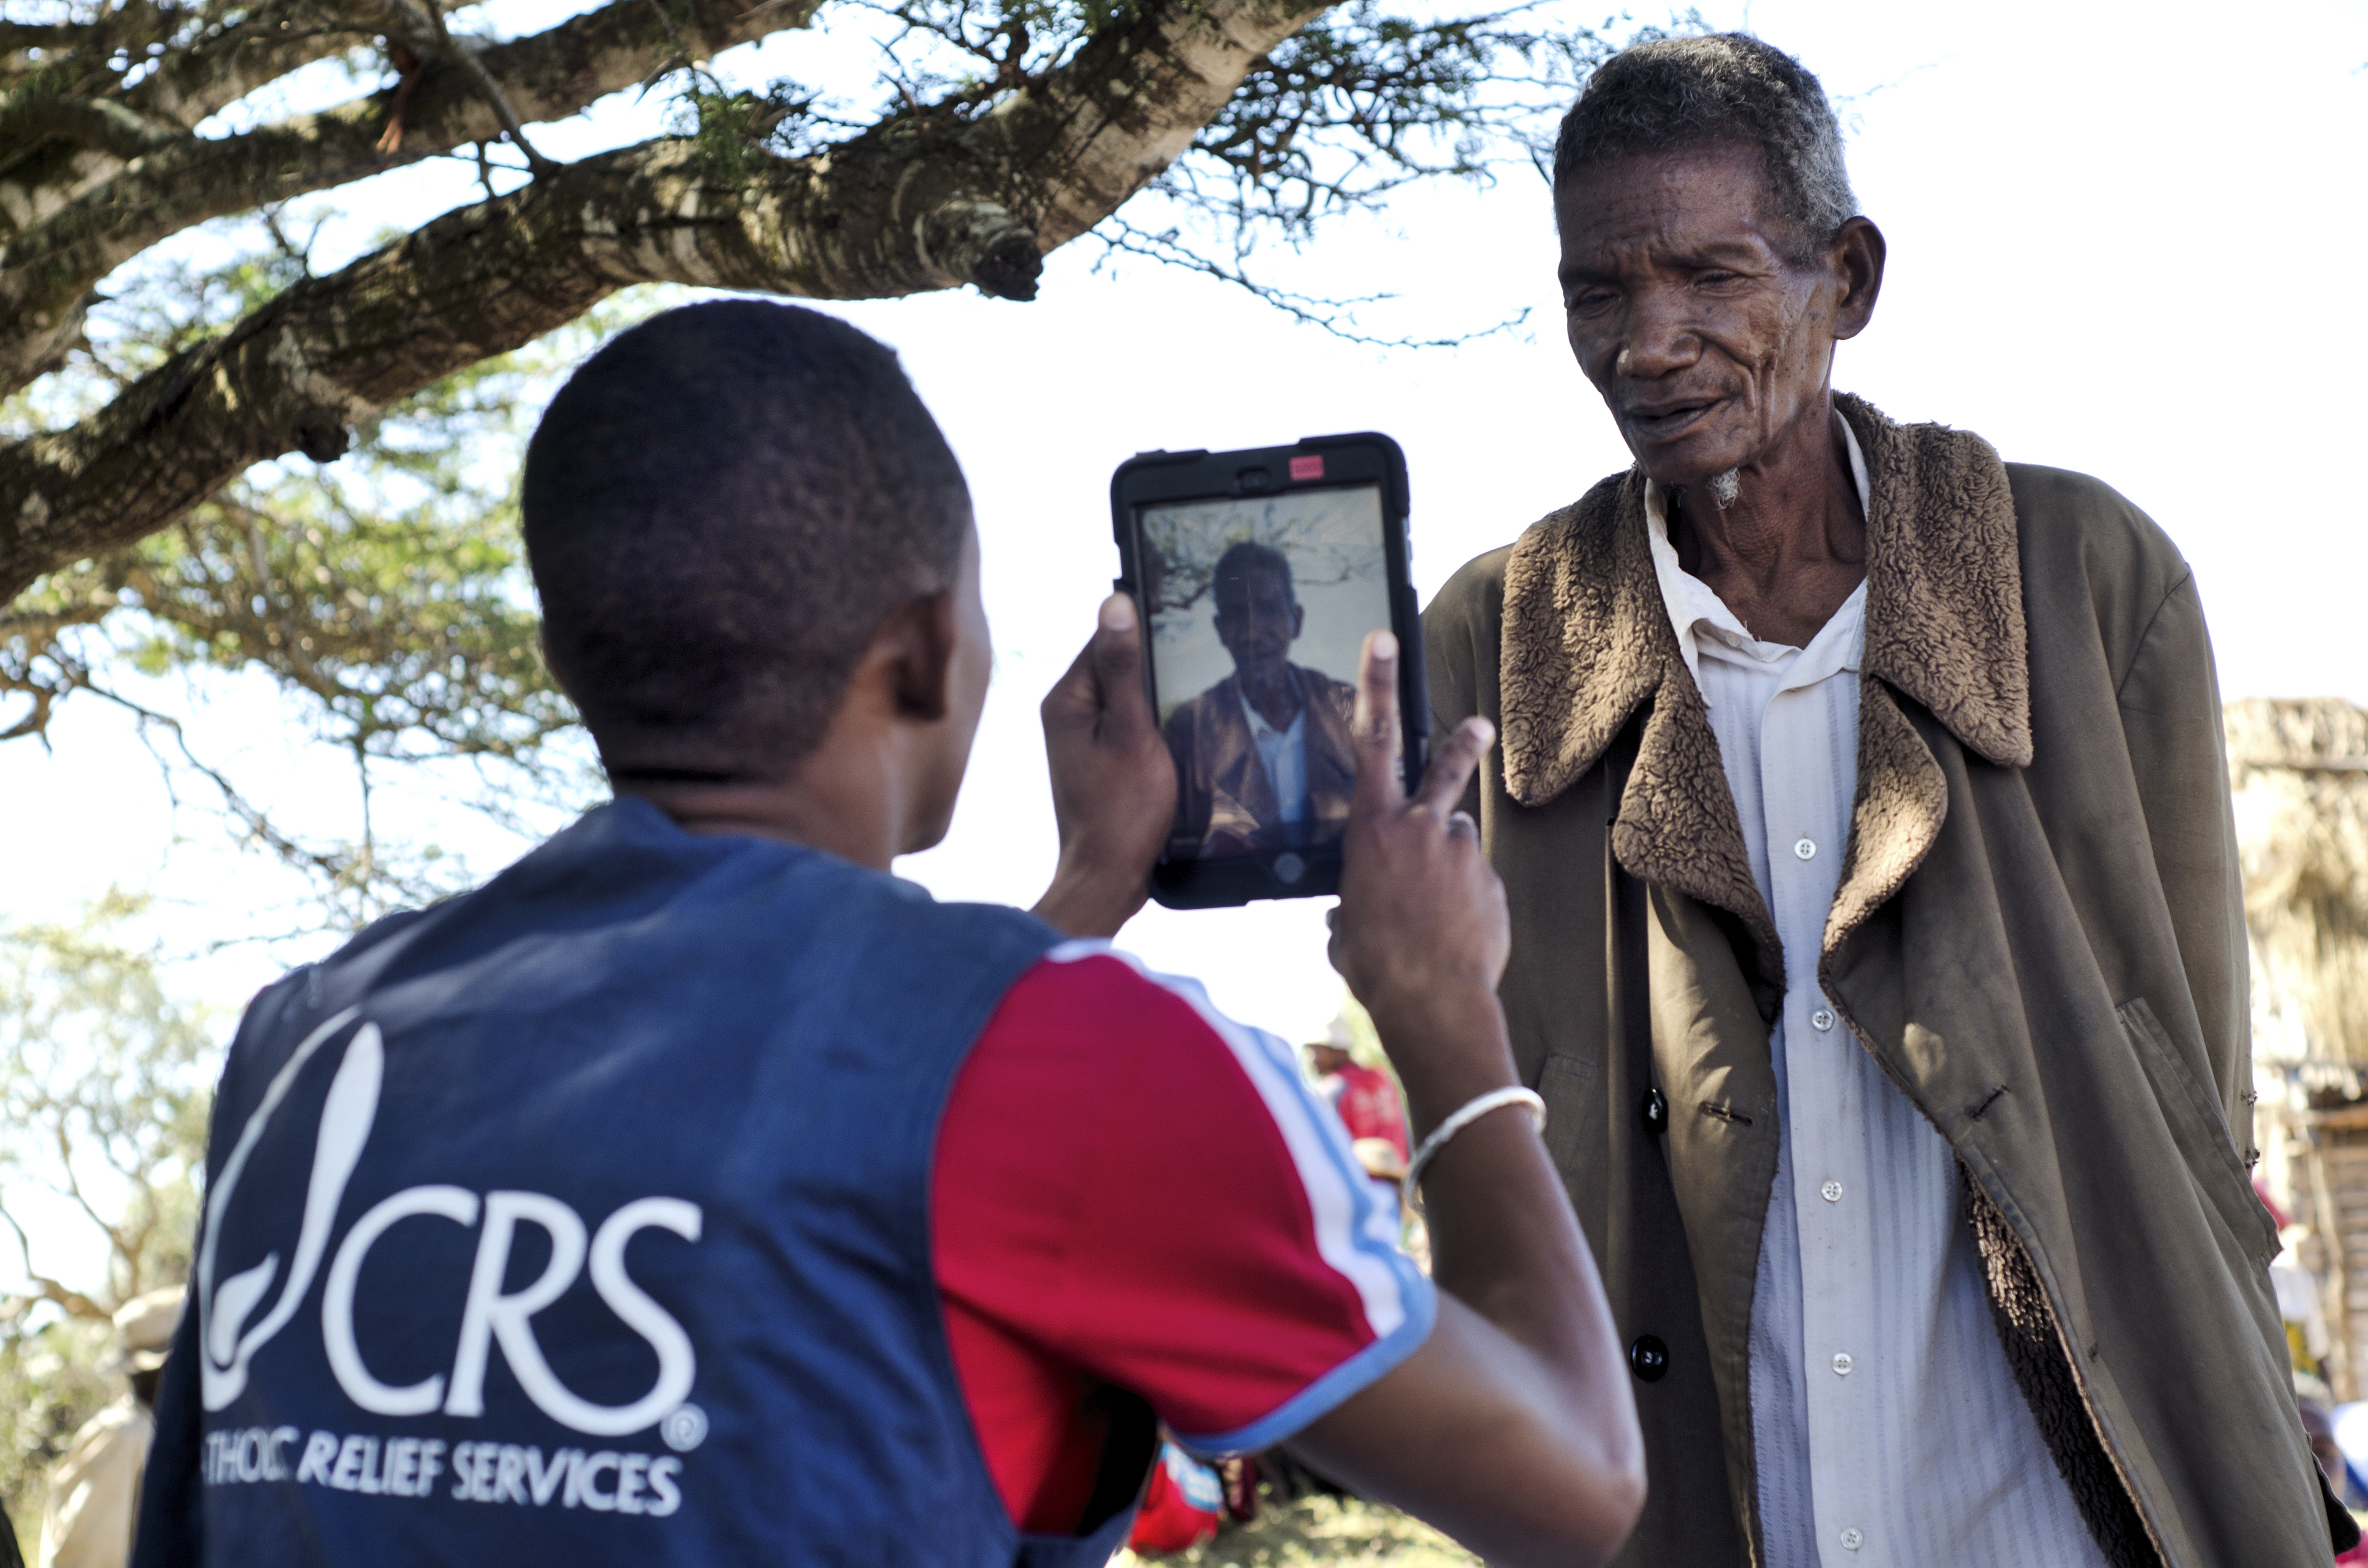 CRS field staff register beneficiaries in Madagascar using iPad minis. Photo by Heidi Yanulis for CRS